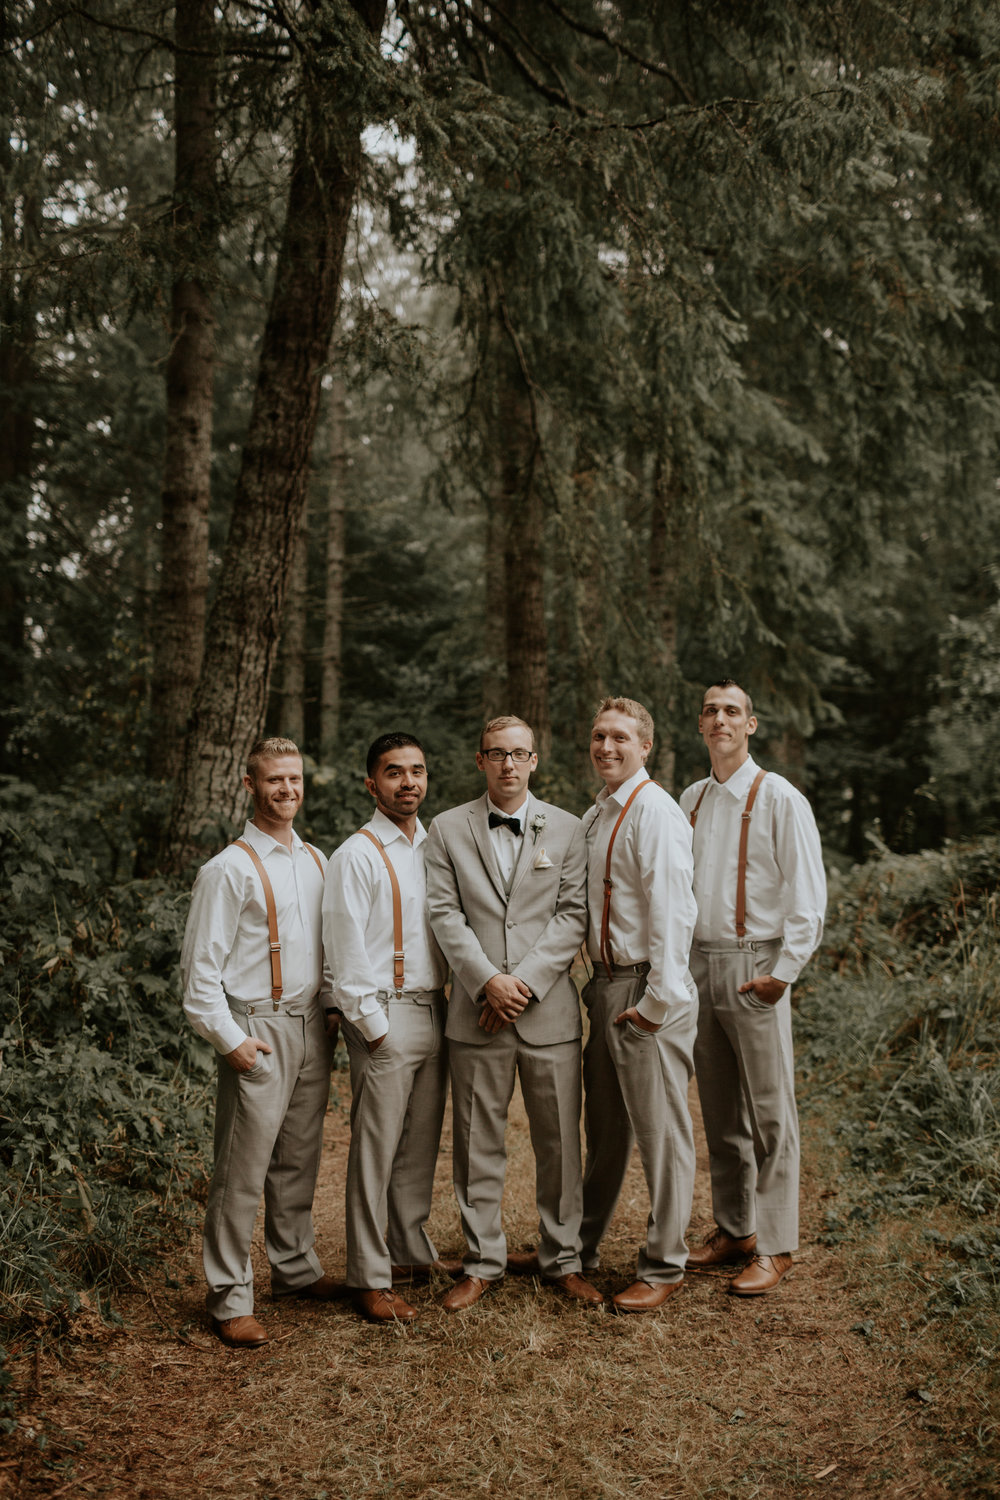 Port-Angeles-elopement-wedding-pnw-olympic-peninsula-photographer-portrait-kayladawnphoto-kayla-dawn-photography-olympic-national-park-24.jpg